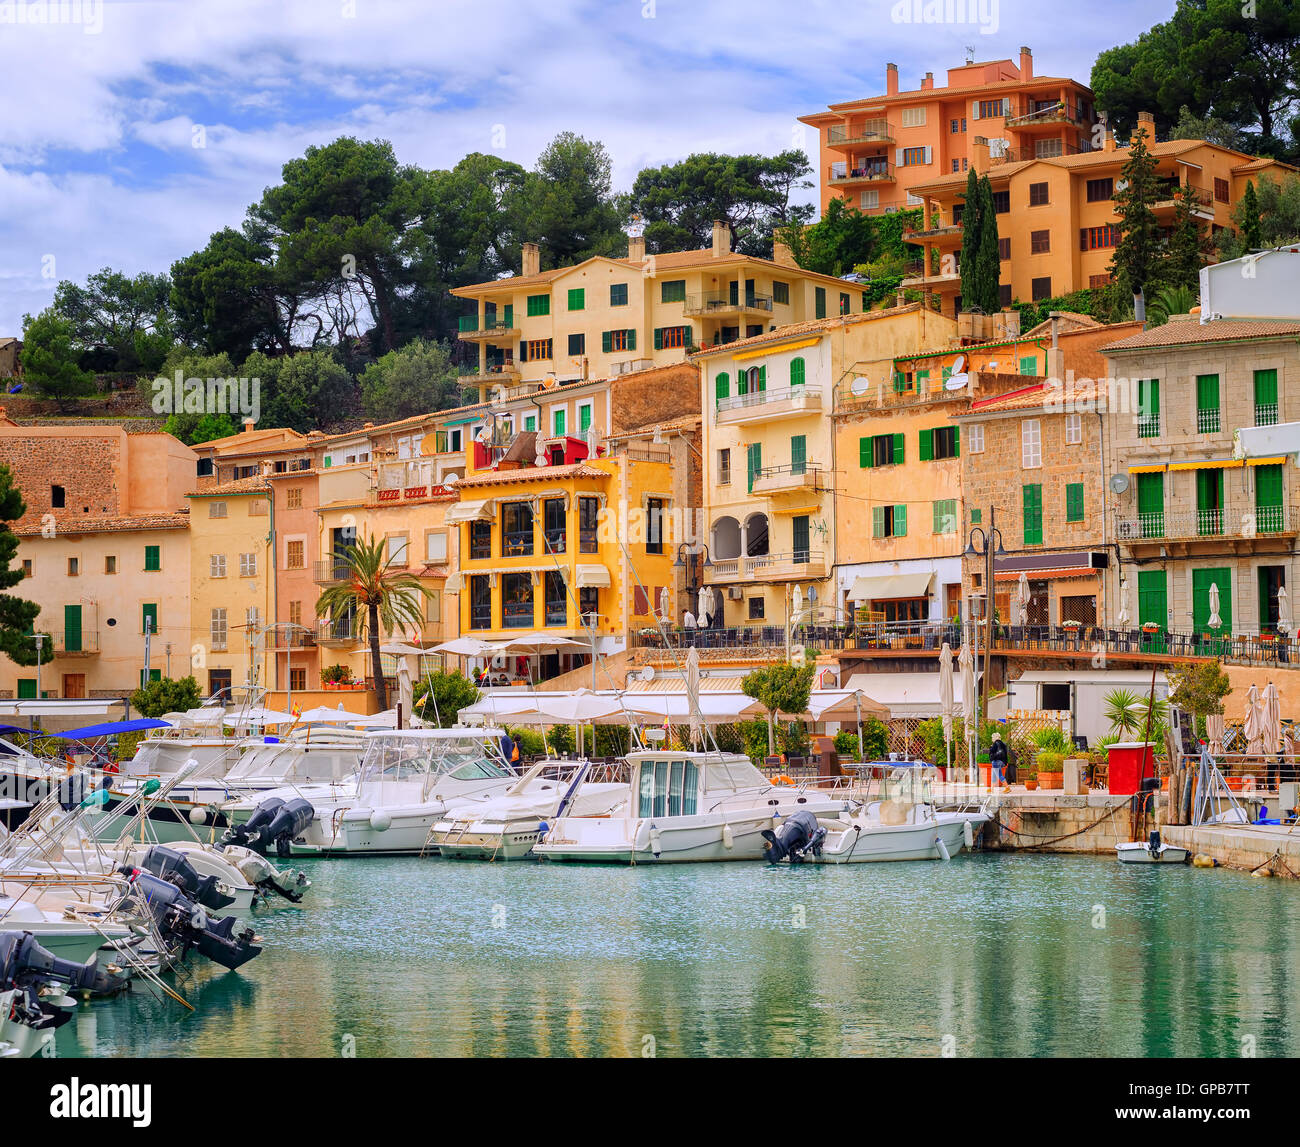 Motor boats and traditional waterside houses in Puerto Soller, Mallorca, Spain - Stock Image